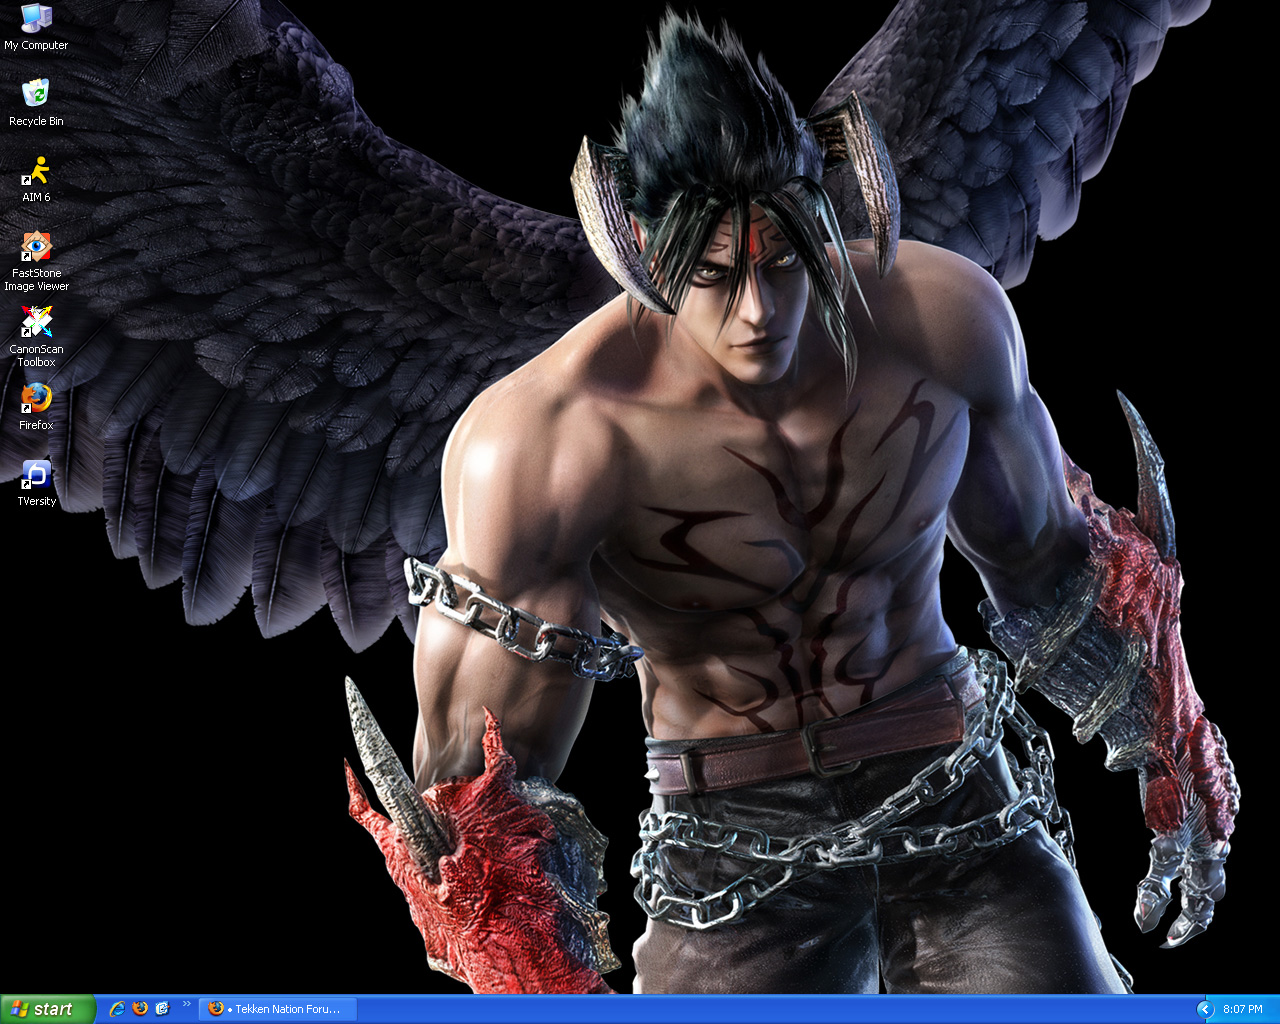 Pretty plain, but it's the highest-res version of Devil Jin's T6BR CGI I've